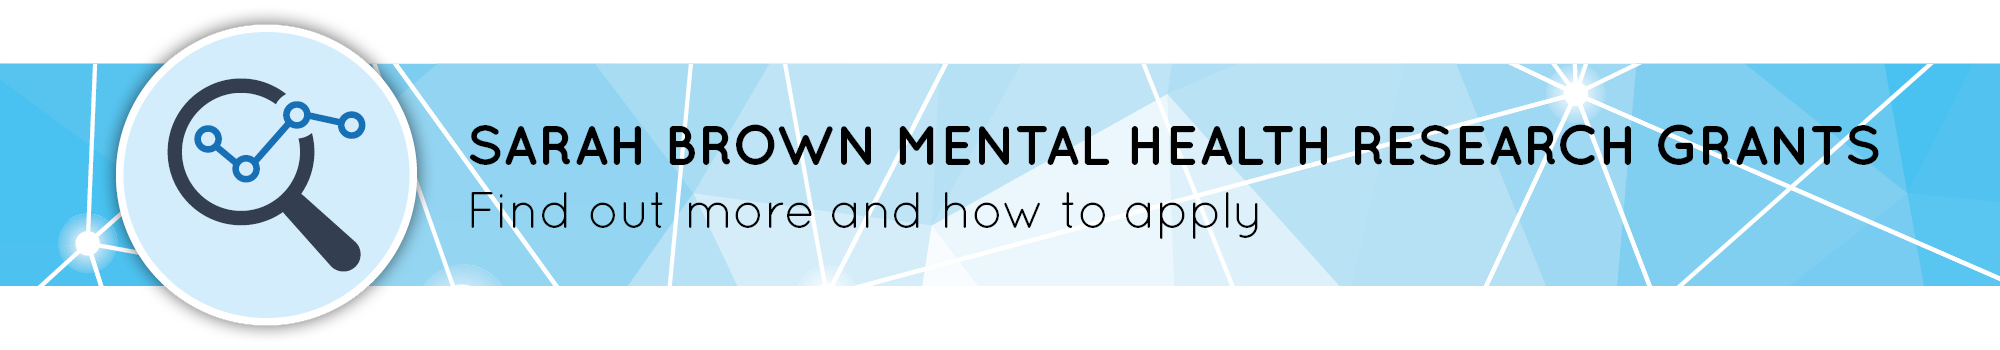 Sarah Brown Mental Health Research Grants banner graphic - Find out more and how to apply